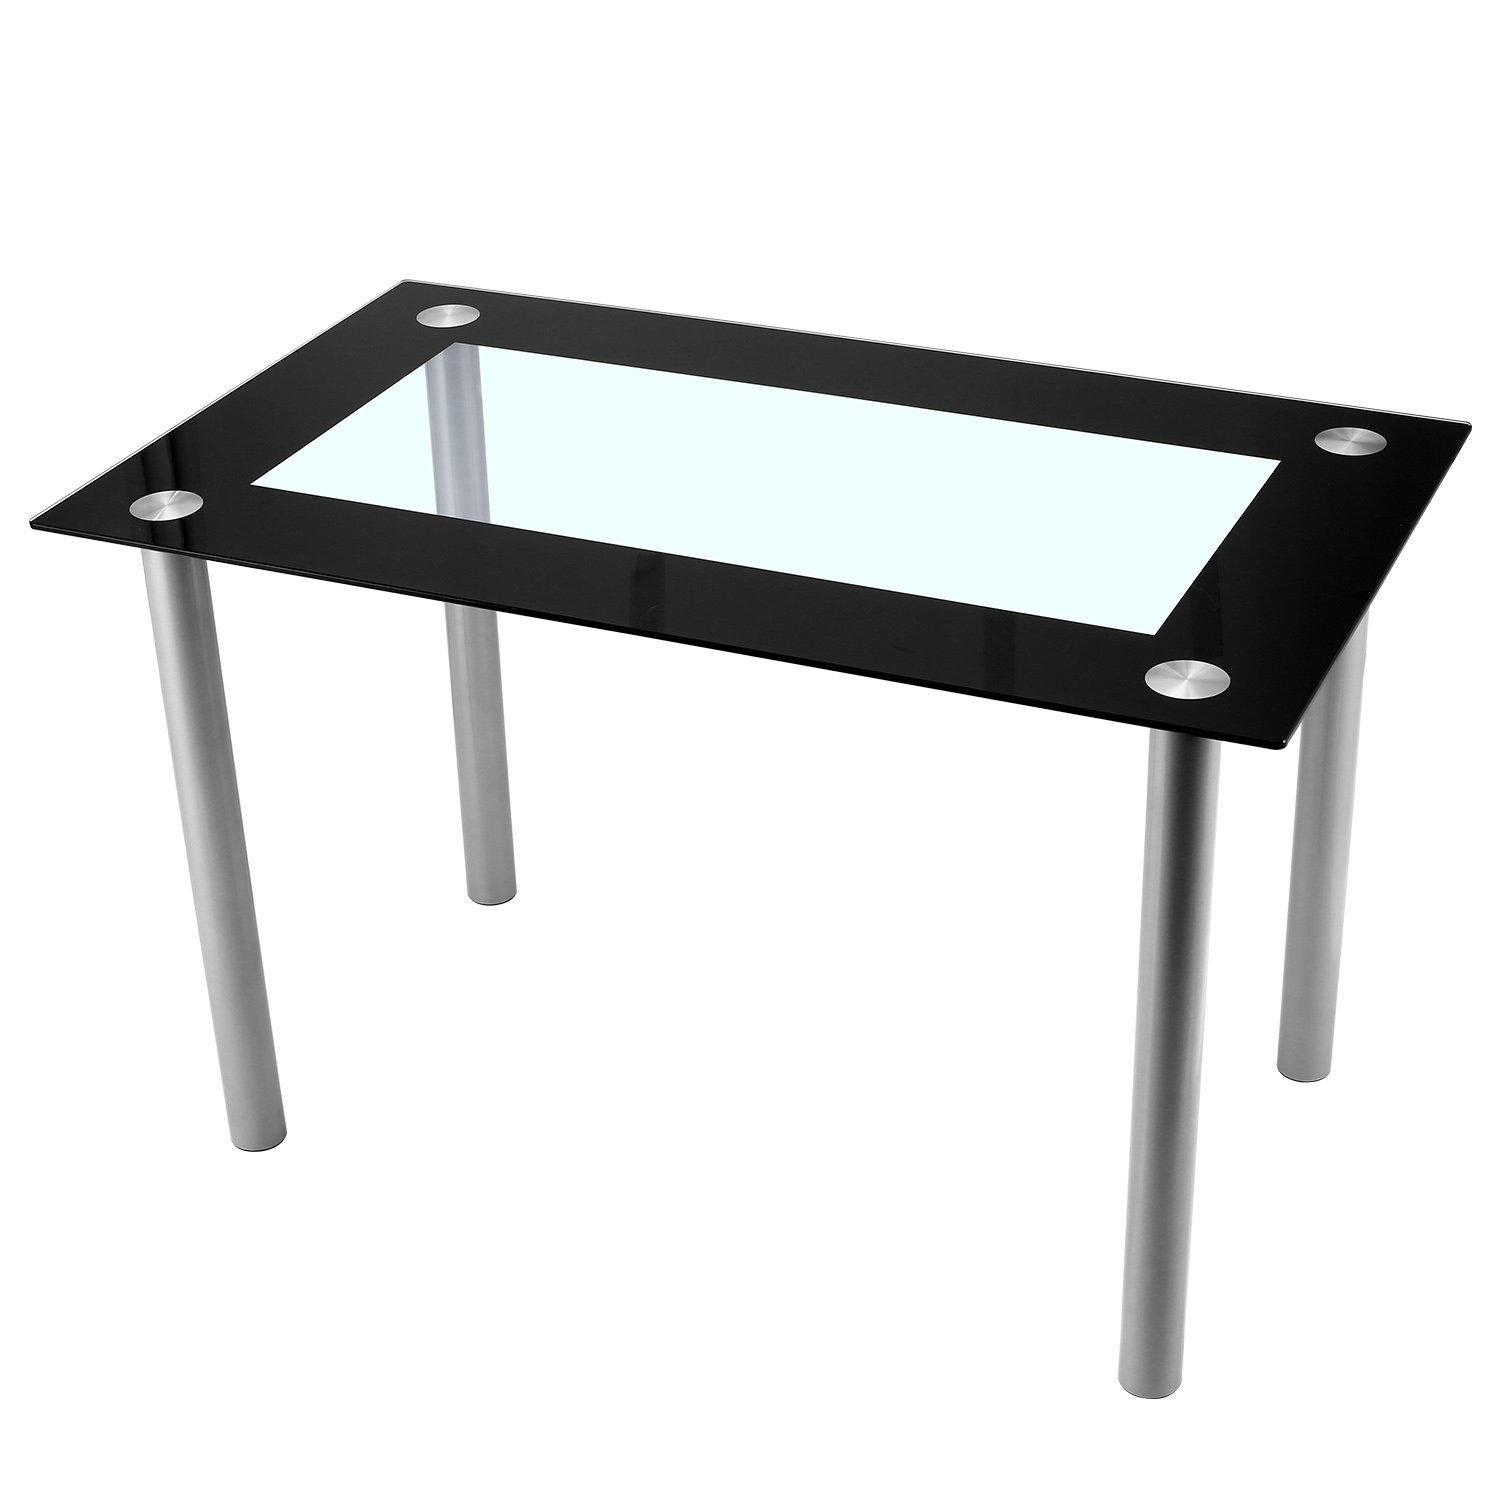 Kaluo Black Modern Dinning Table, Rectangular Glass Top Table Home Furniture (1 Table)